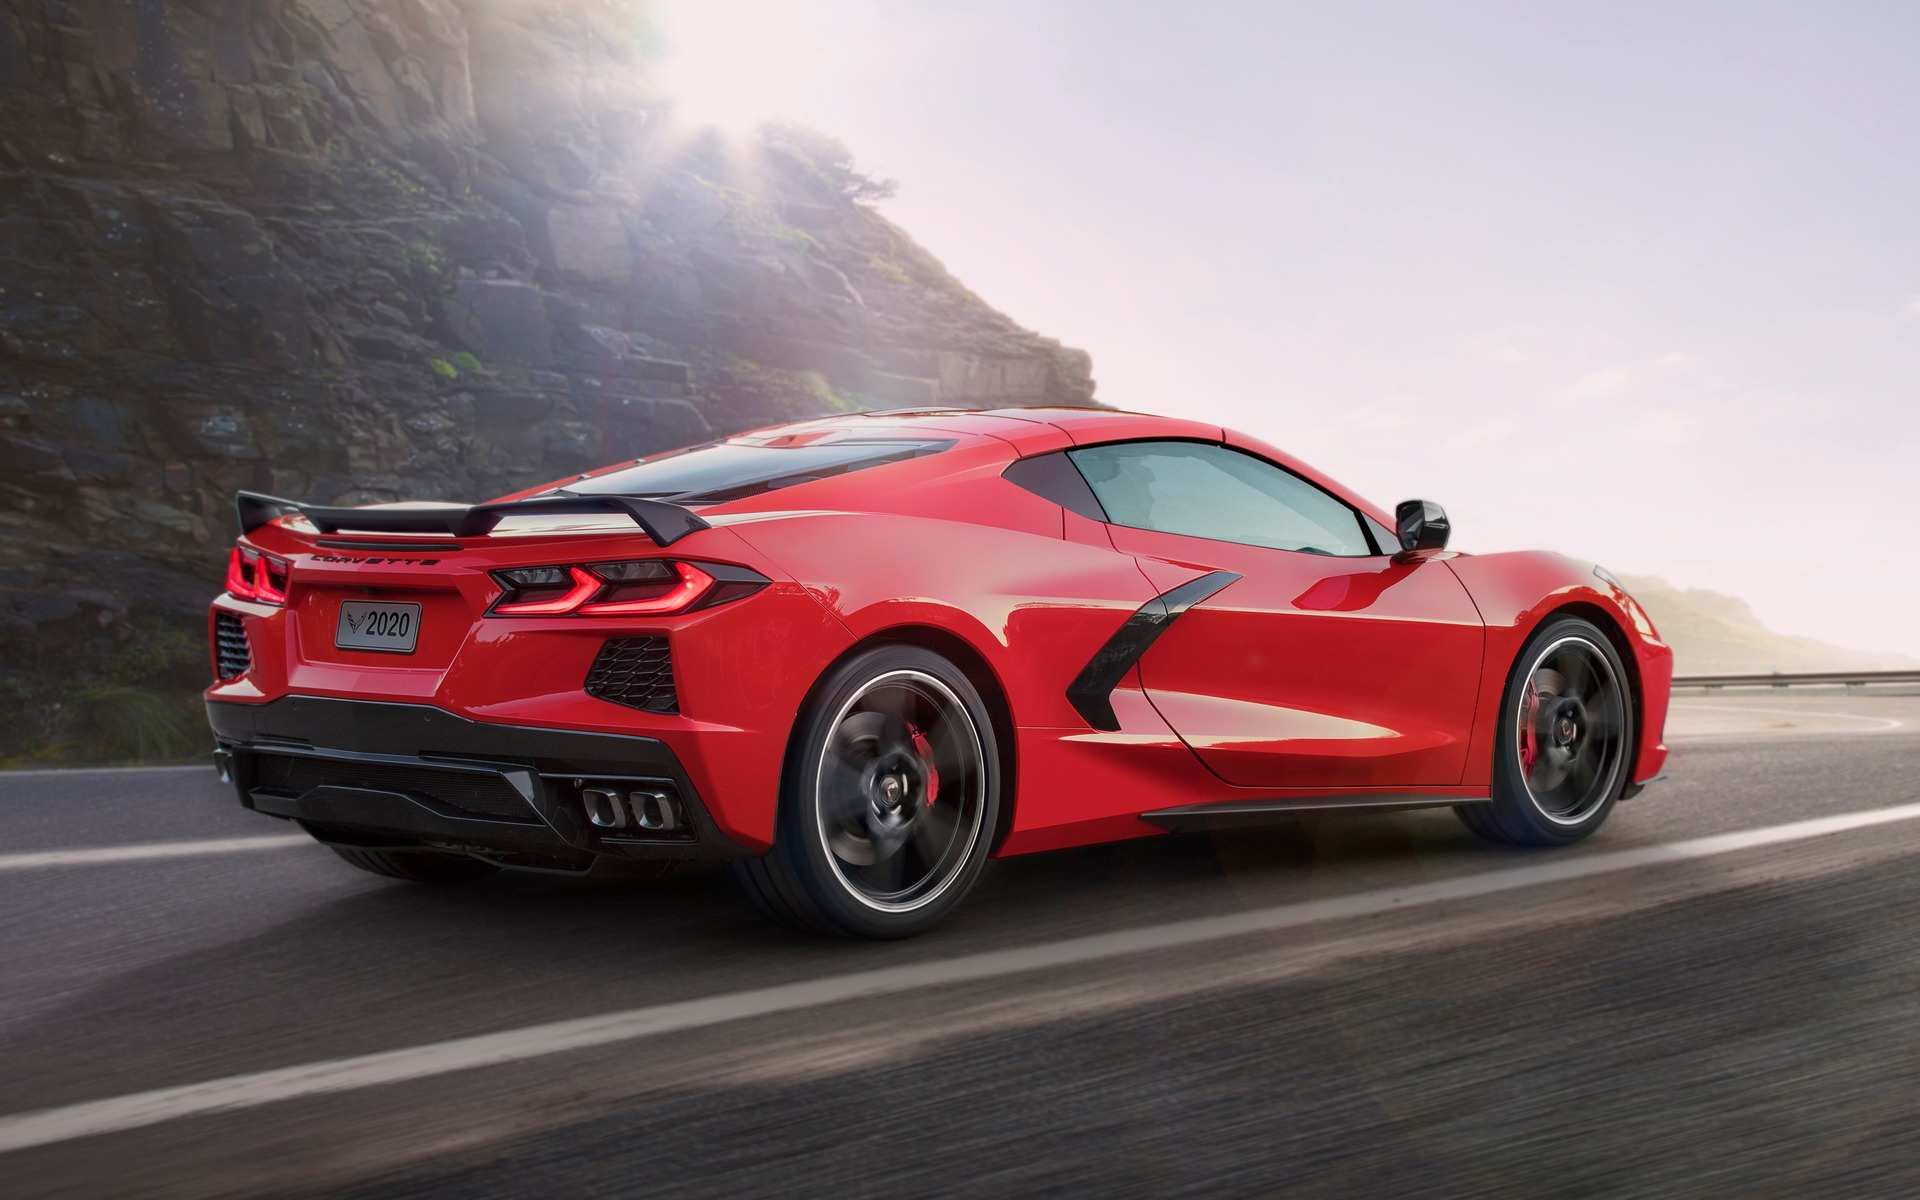 57 The Chevrolet Corvette 2020 Engine by Chevrolet Corvette 2020